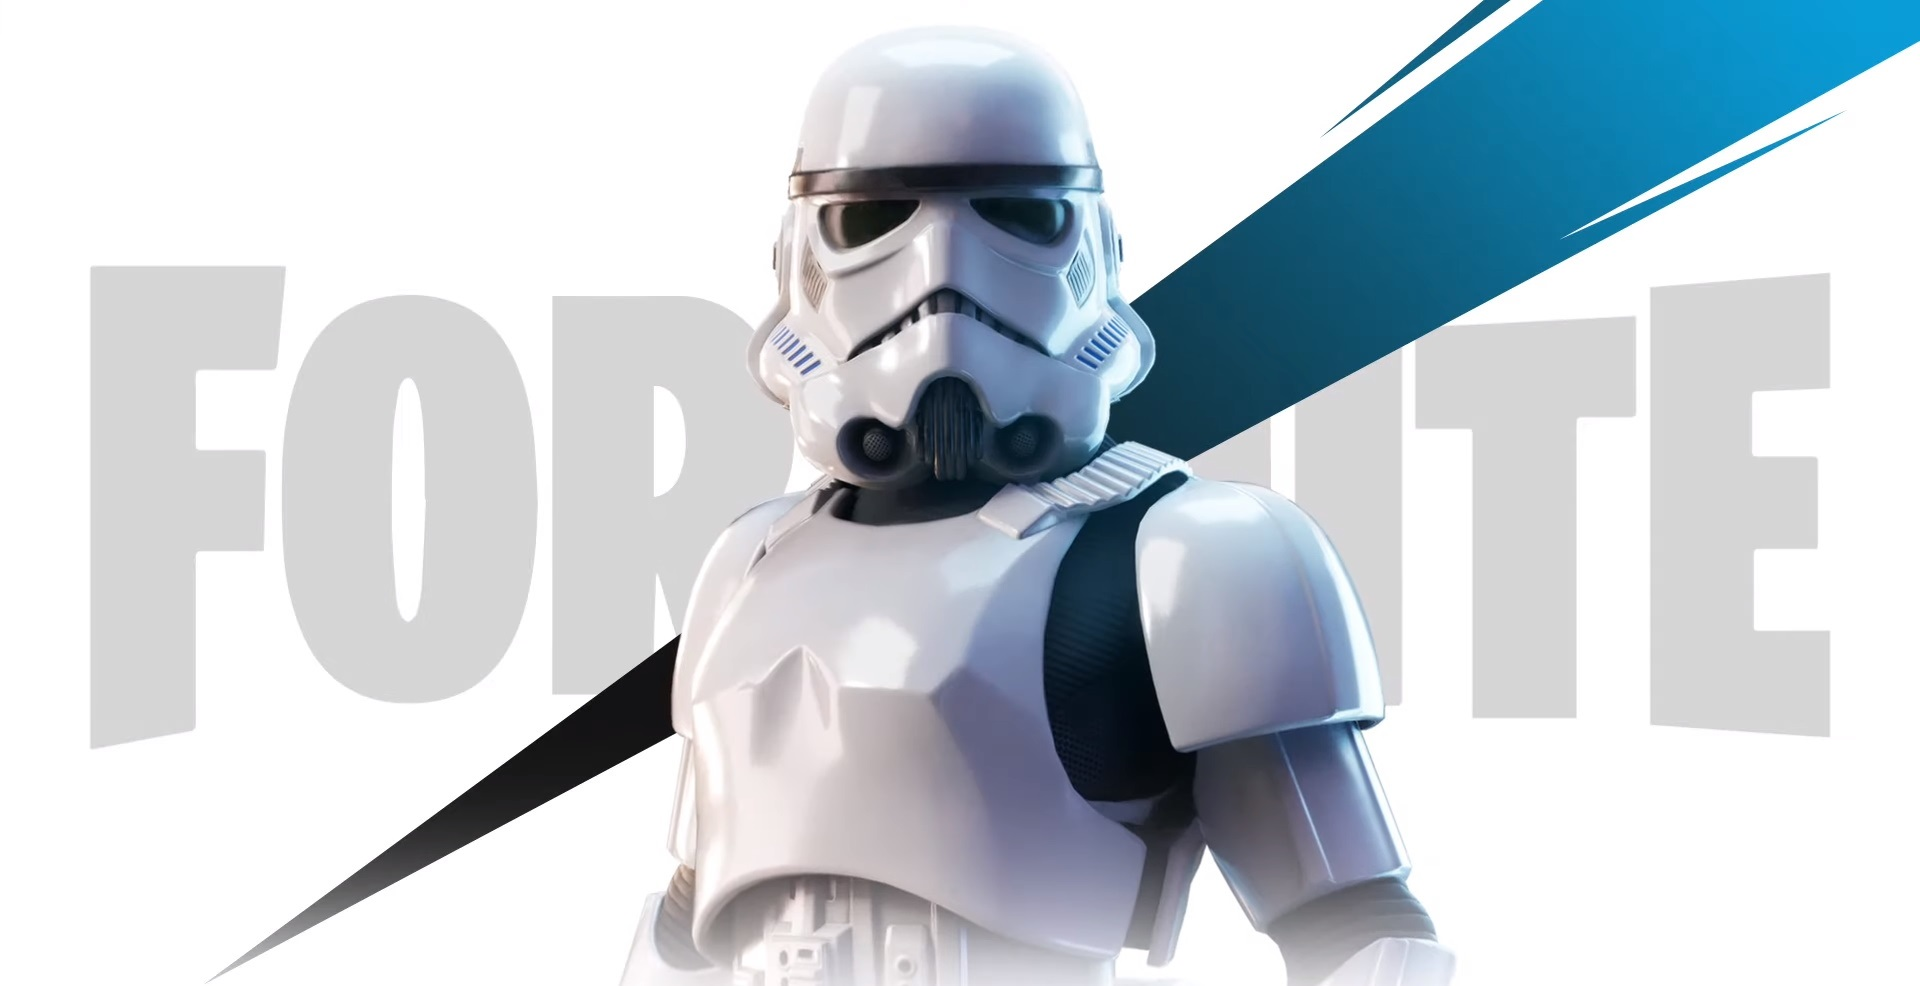 star wars is coming to fortnite